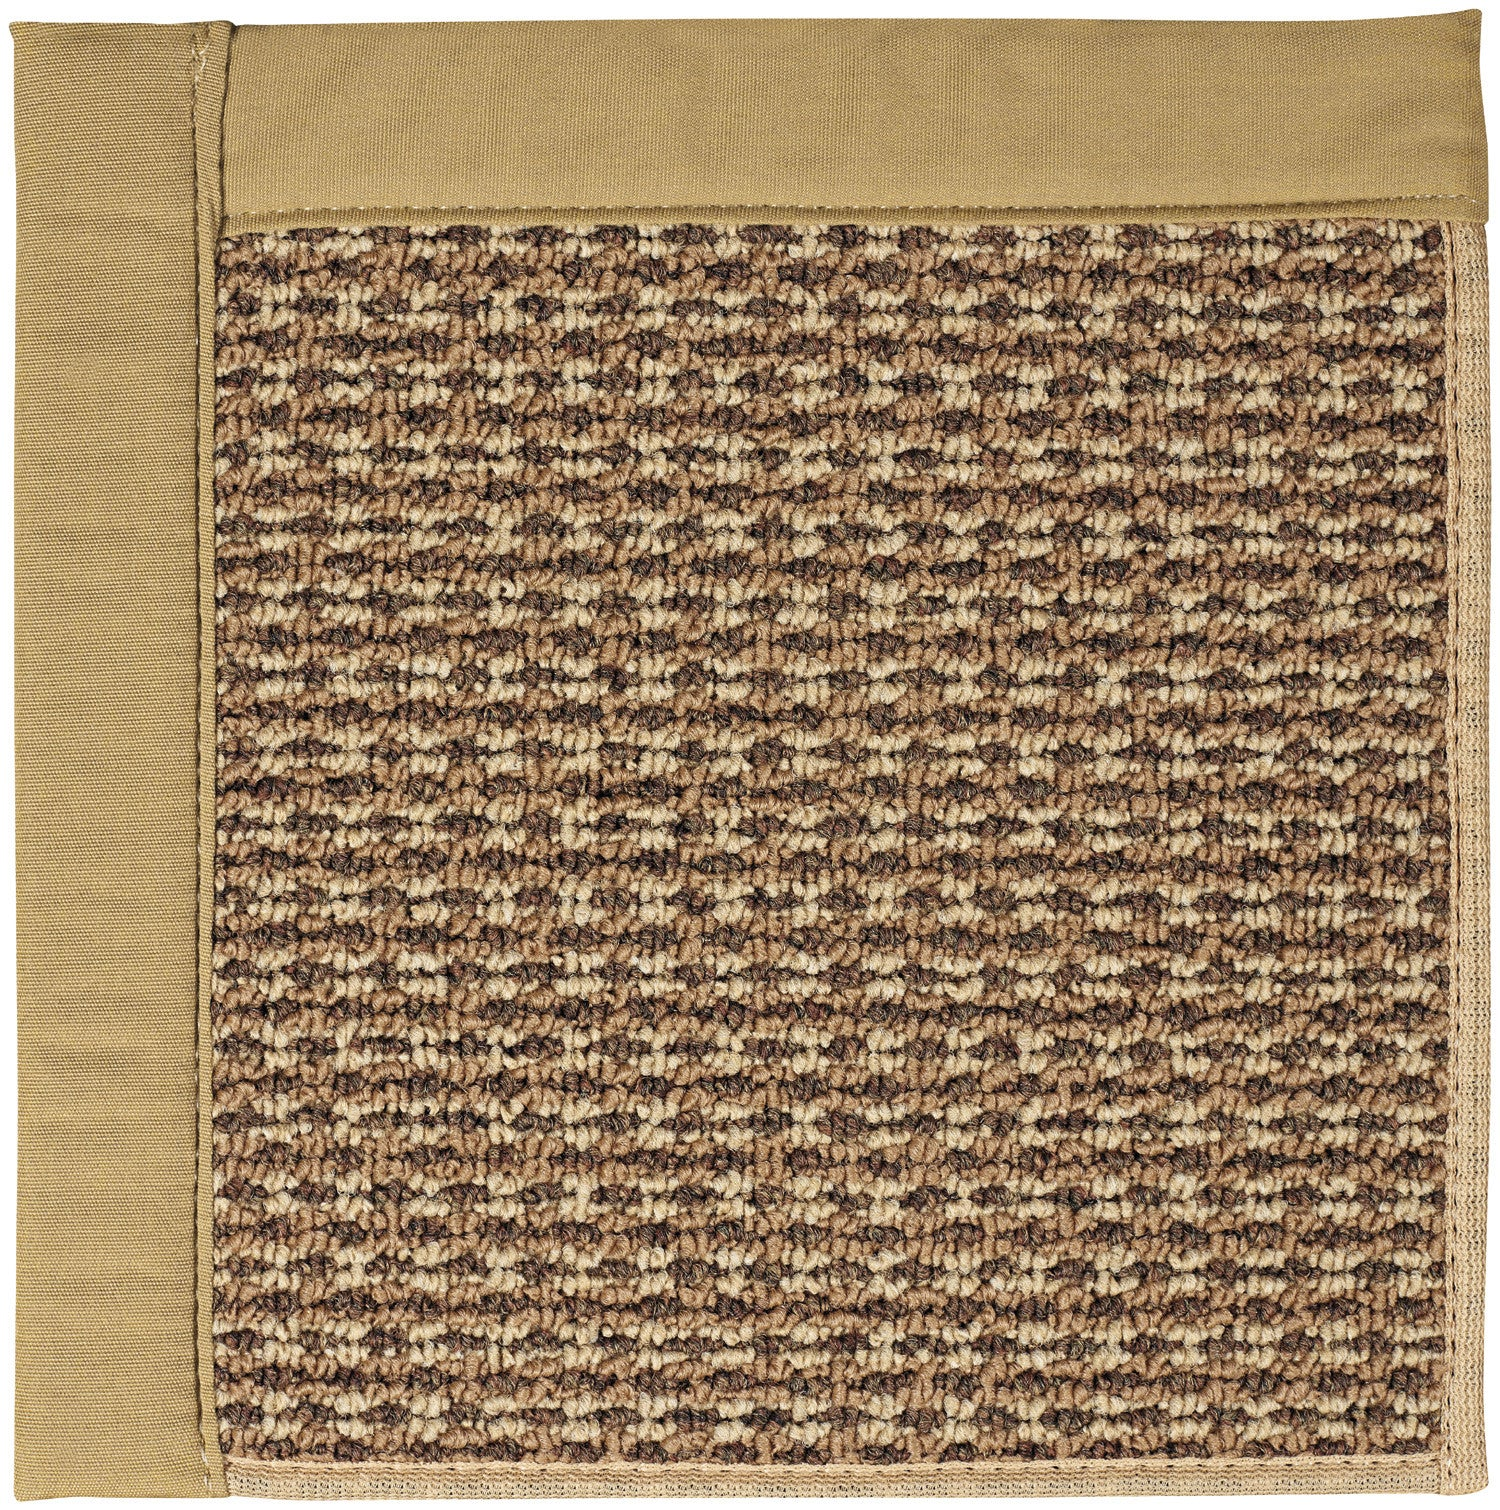 Capel Heartfelt 2038 Gold 180 Area Rug main image